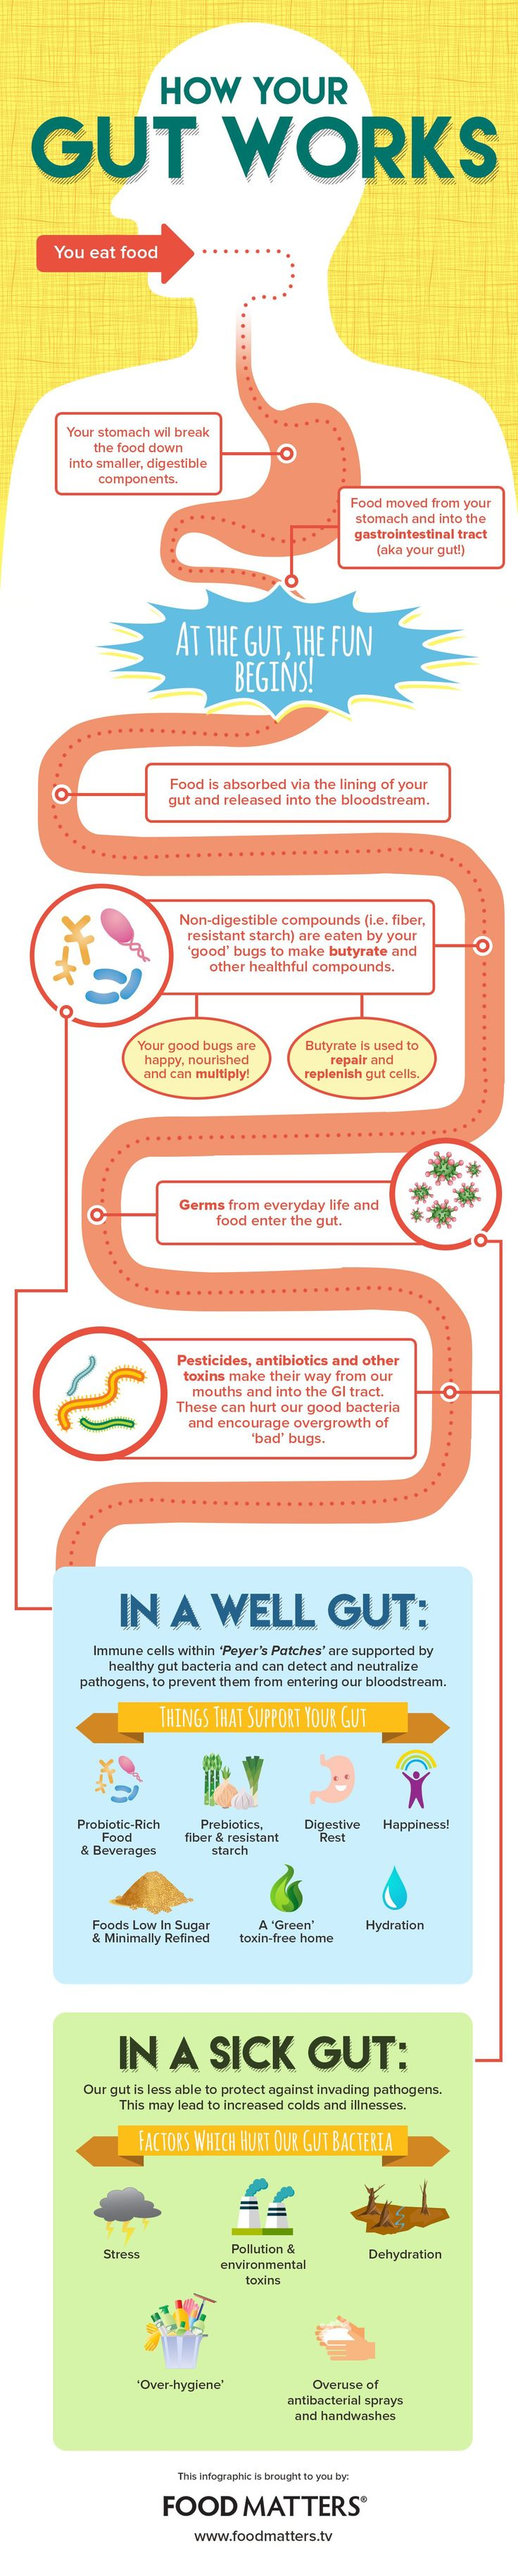 This infographic breaks down just what our gut does for us and how to keep it working and healthy.